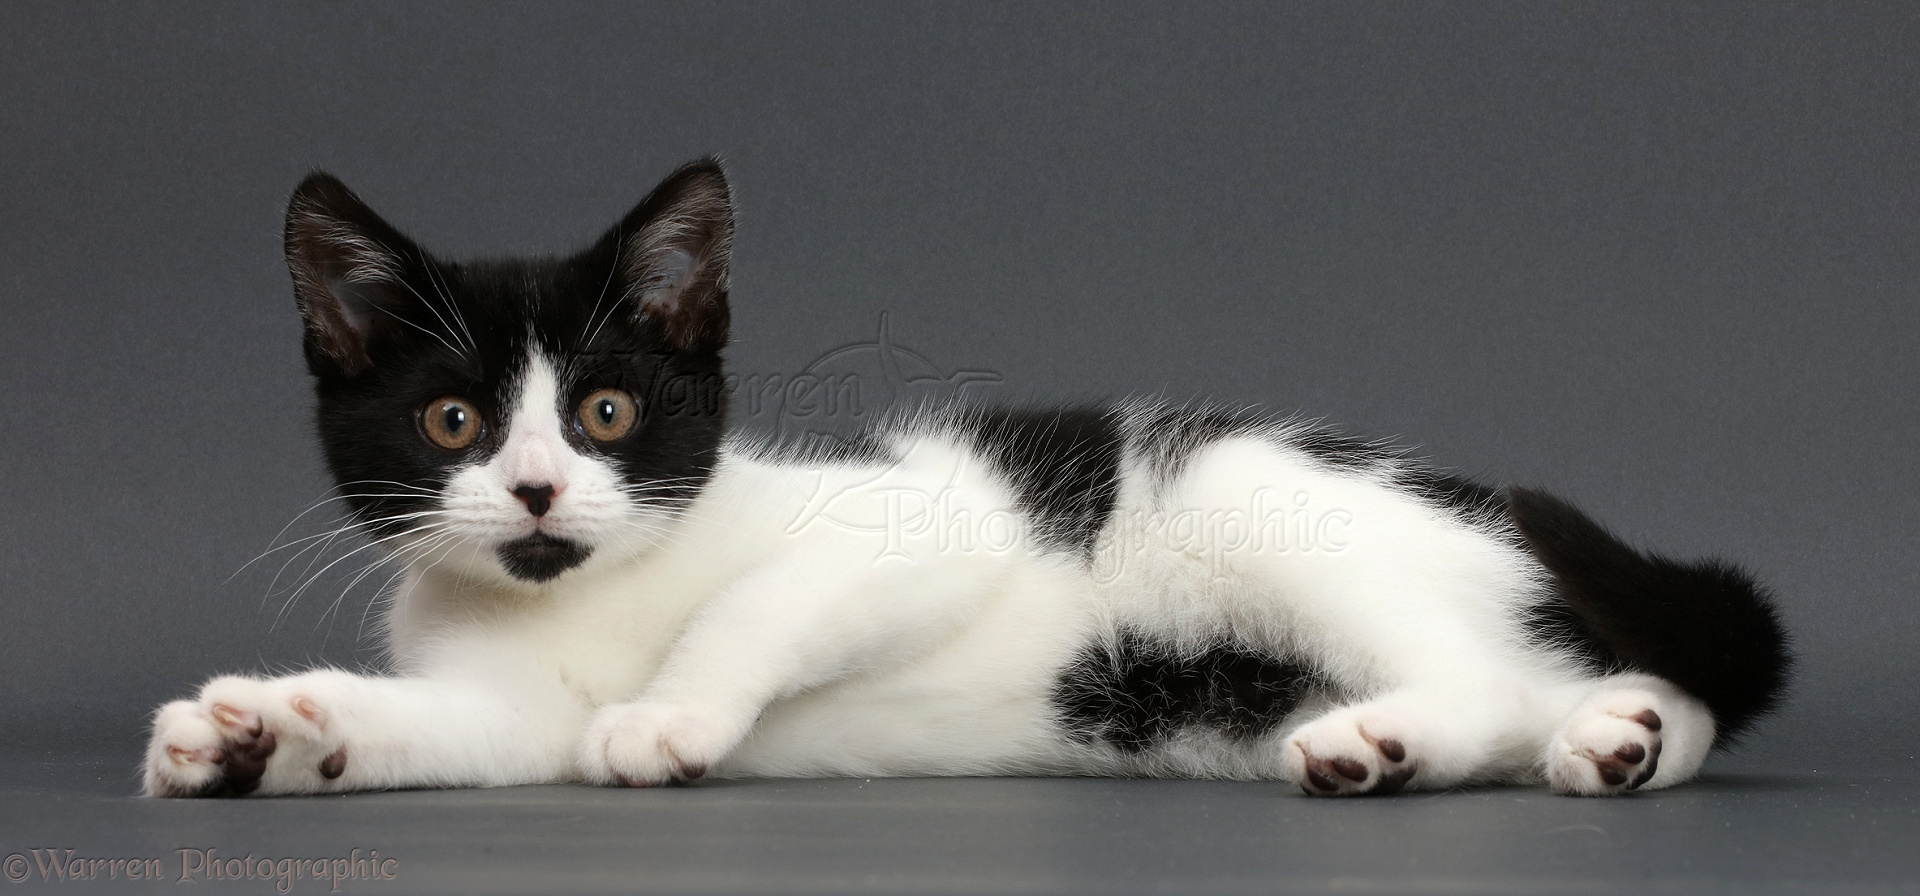 Black-and-white kitten lounging on grey background photo WP42694